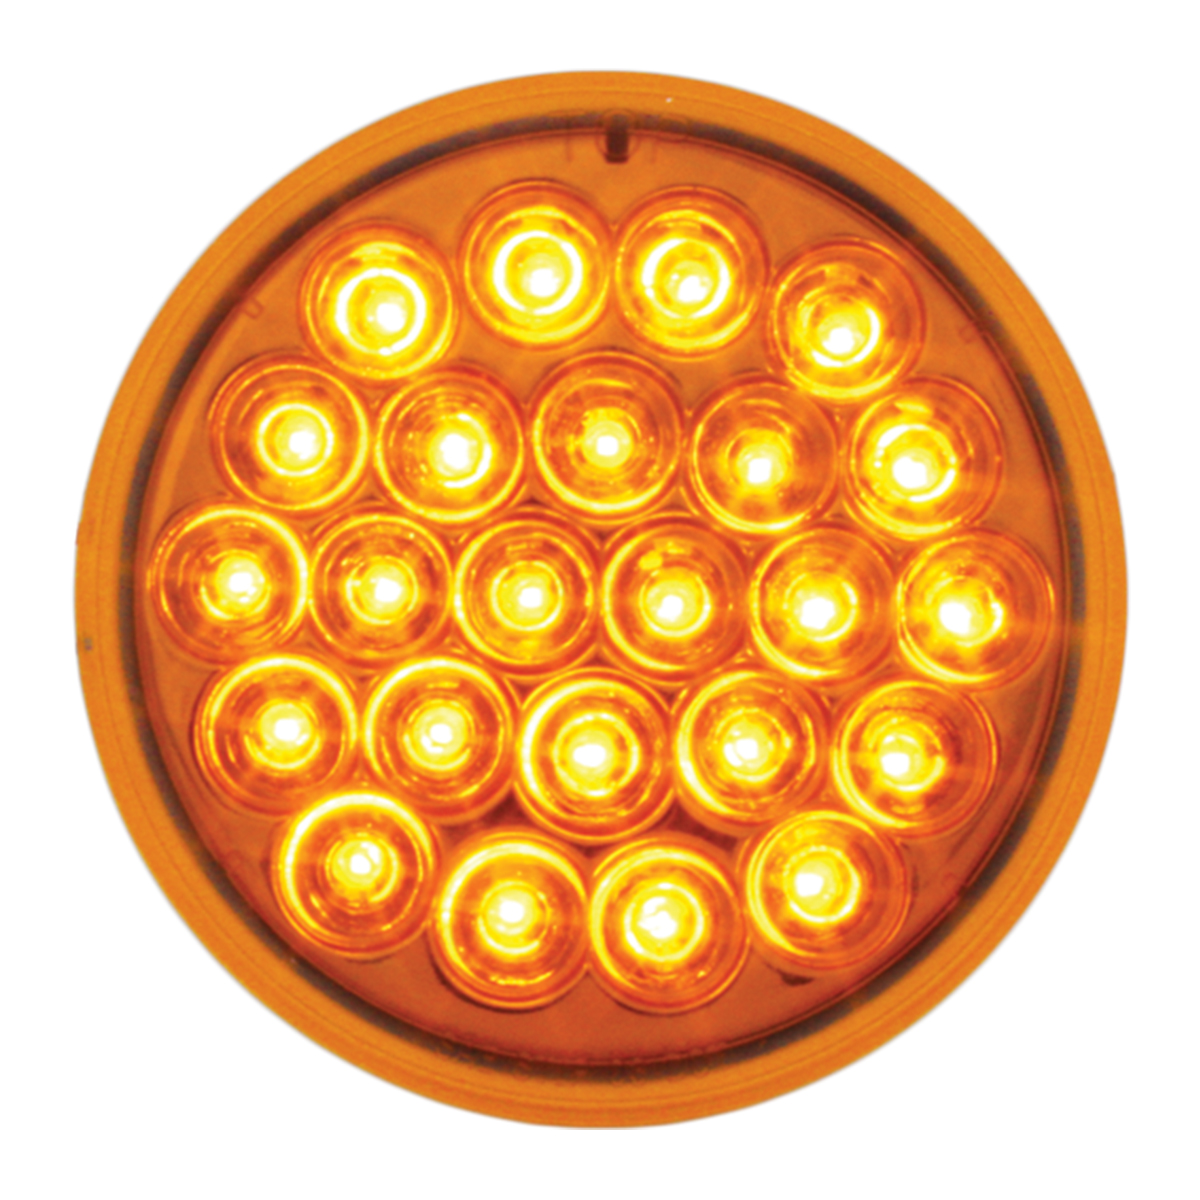 "#78270 4"" Round Pearl LED Amber/Amber Light"